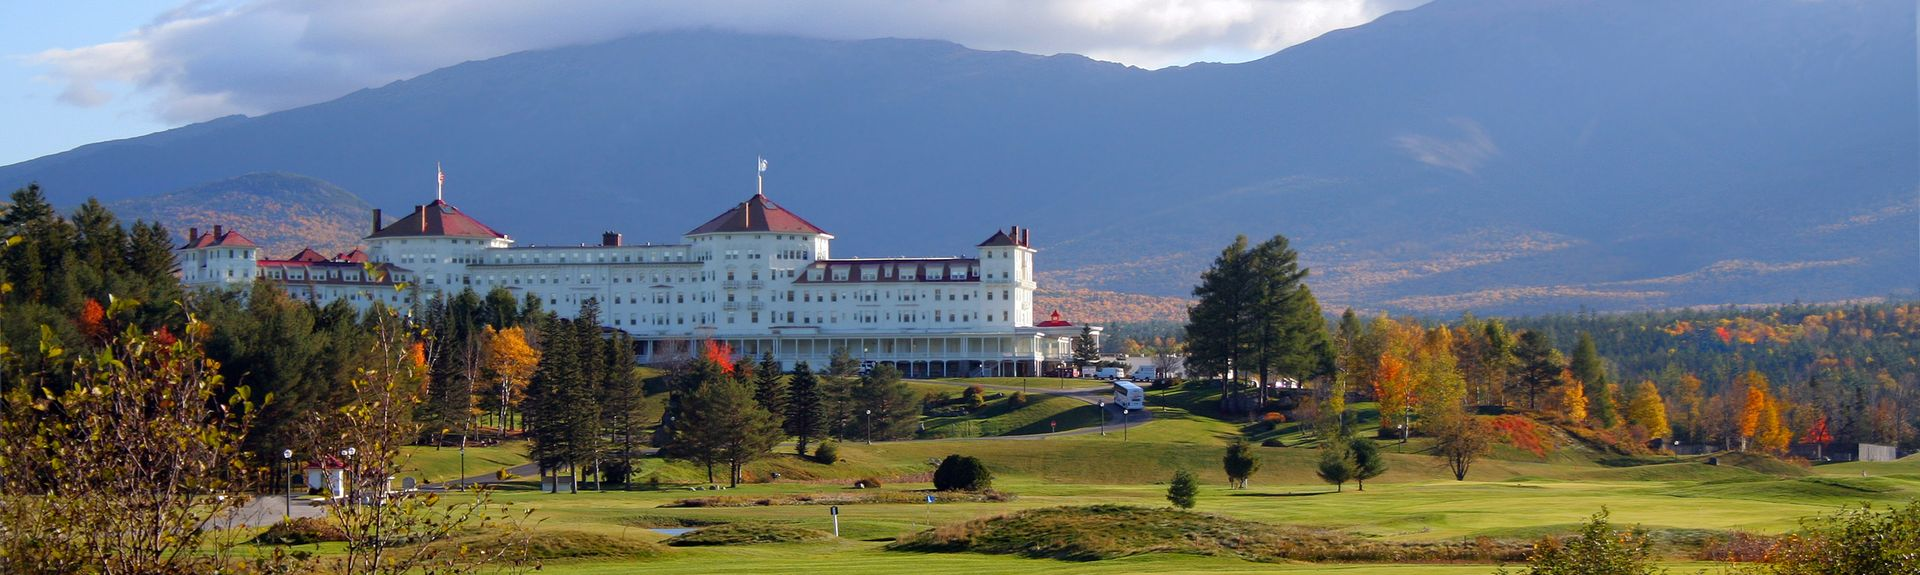 Bretton Woods, New Hampshire, United States of America